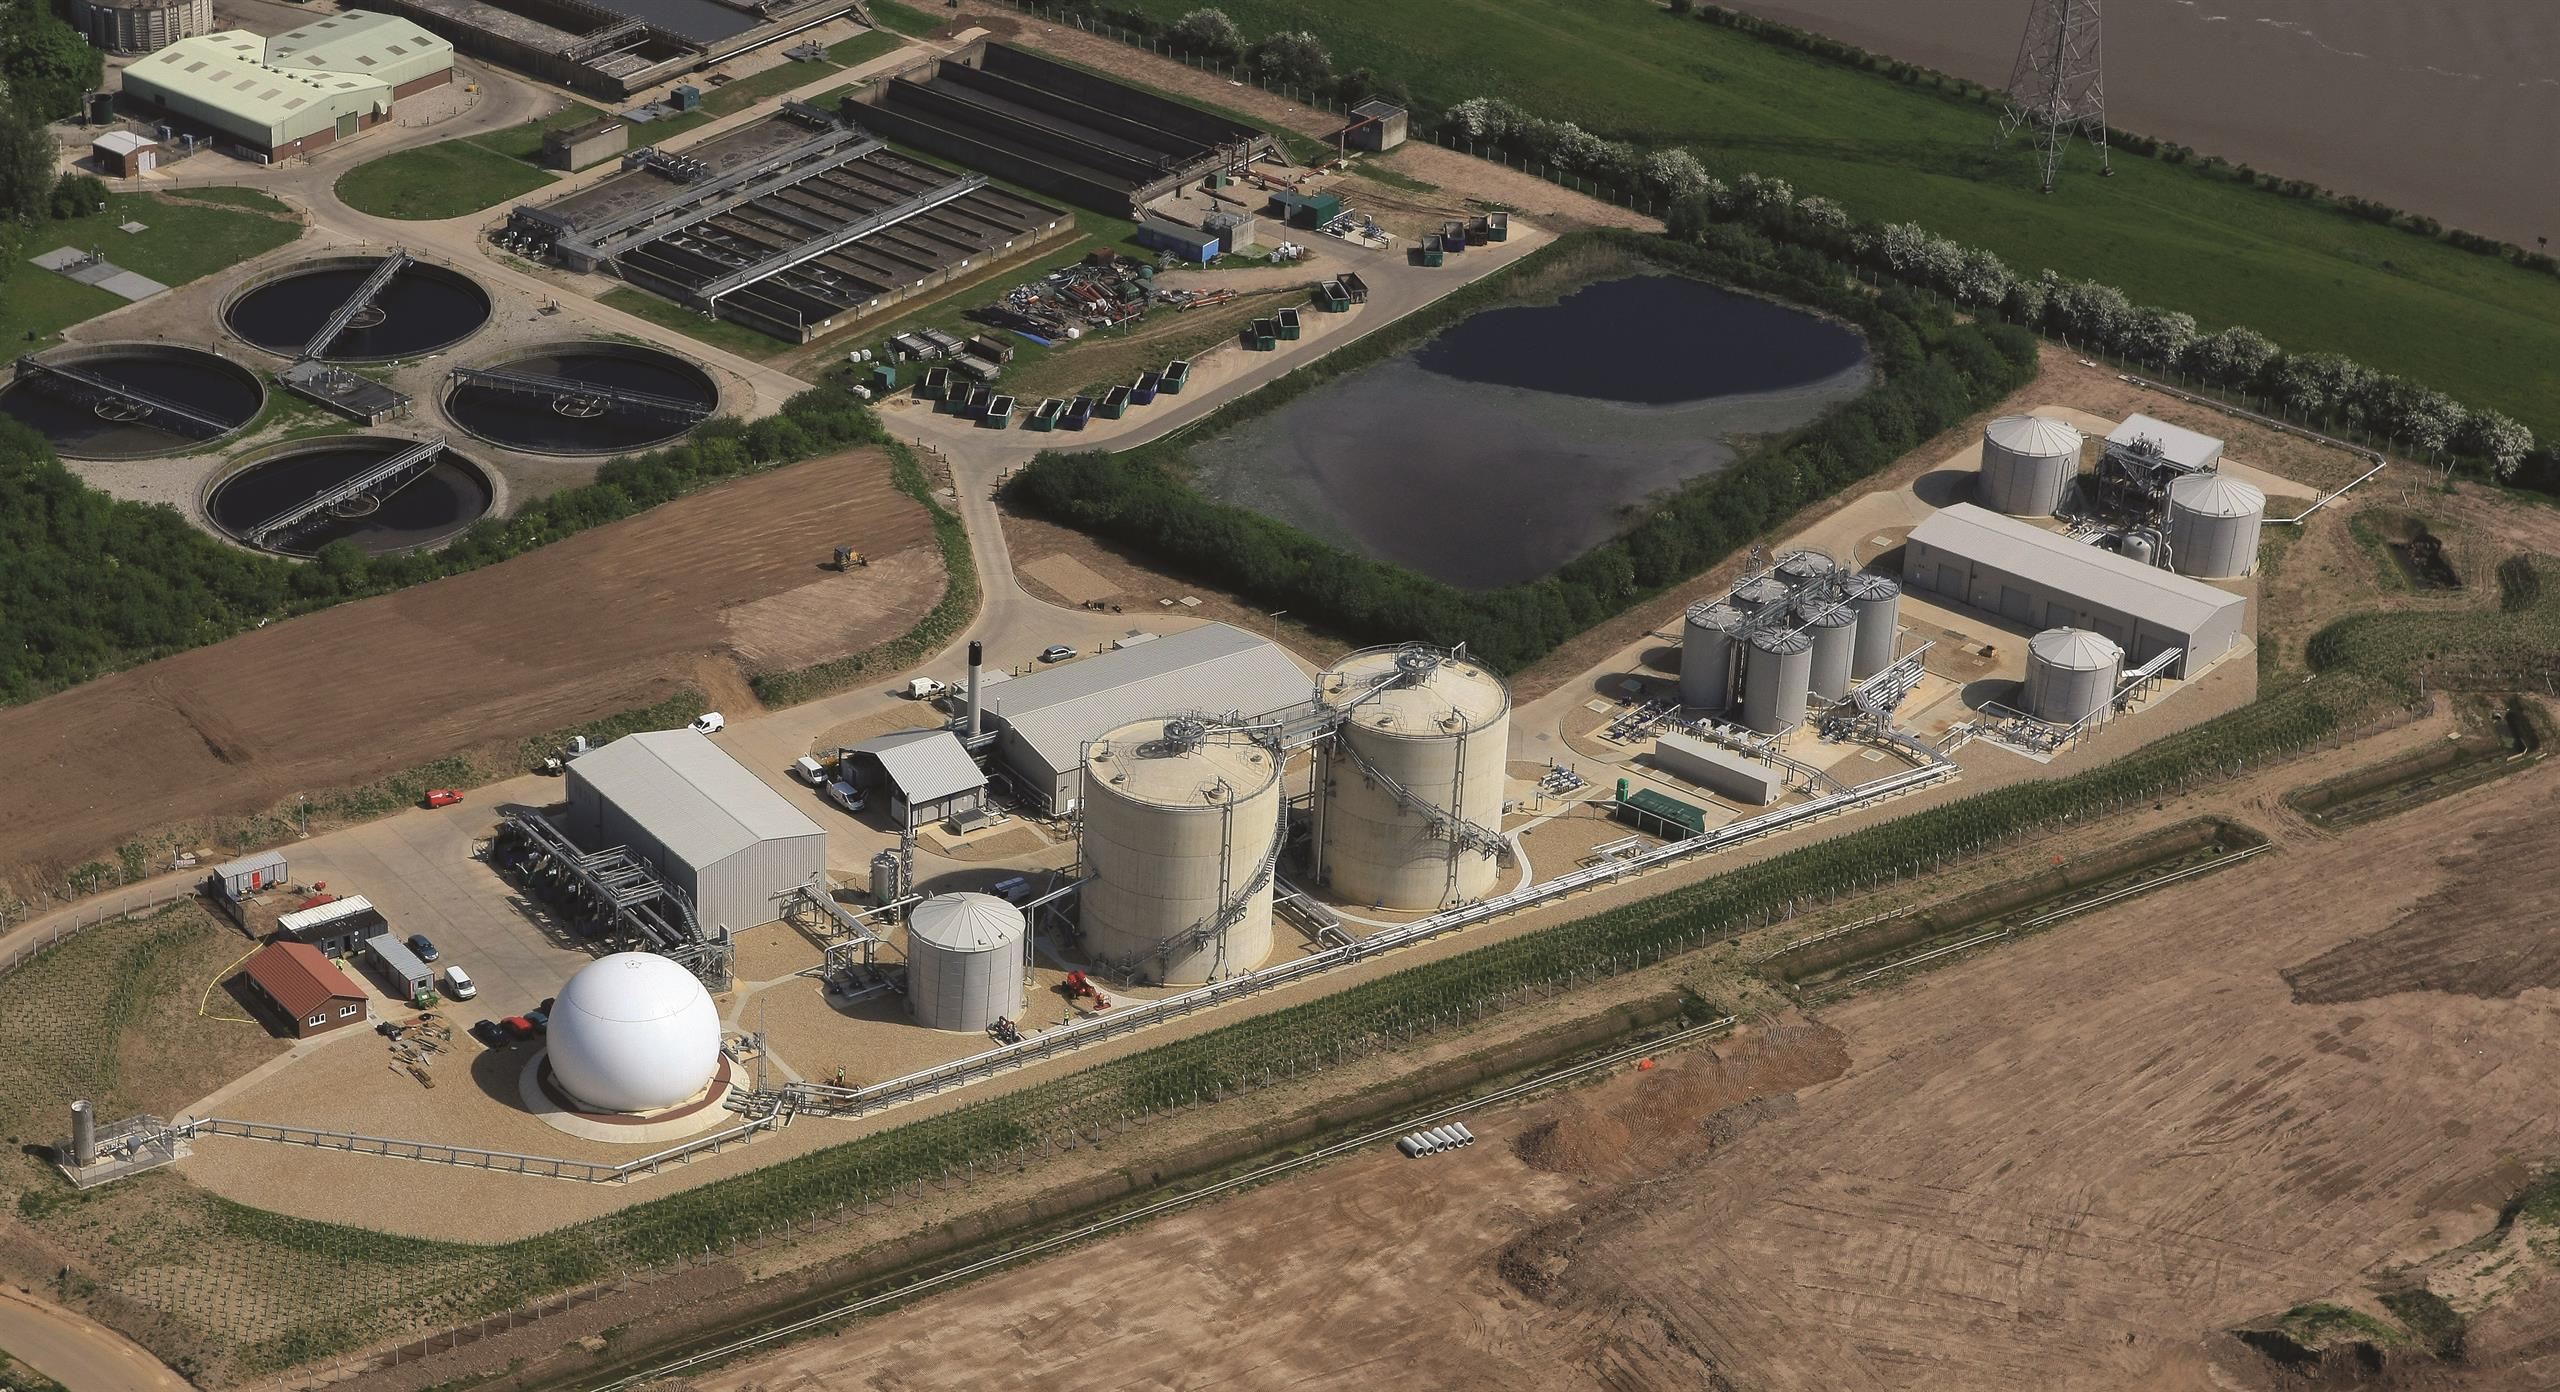 Anglian Water Amp4 Biosolids Programme Uk Mott Macdonald